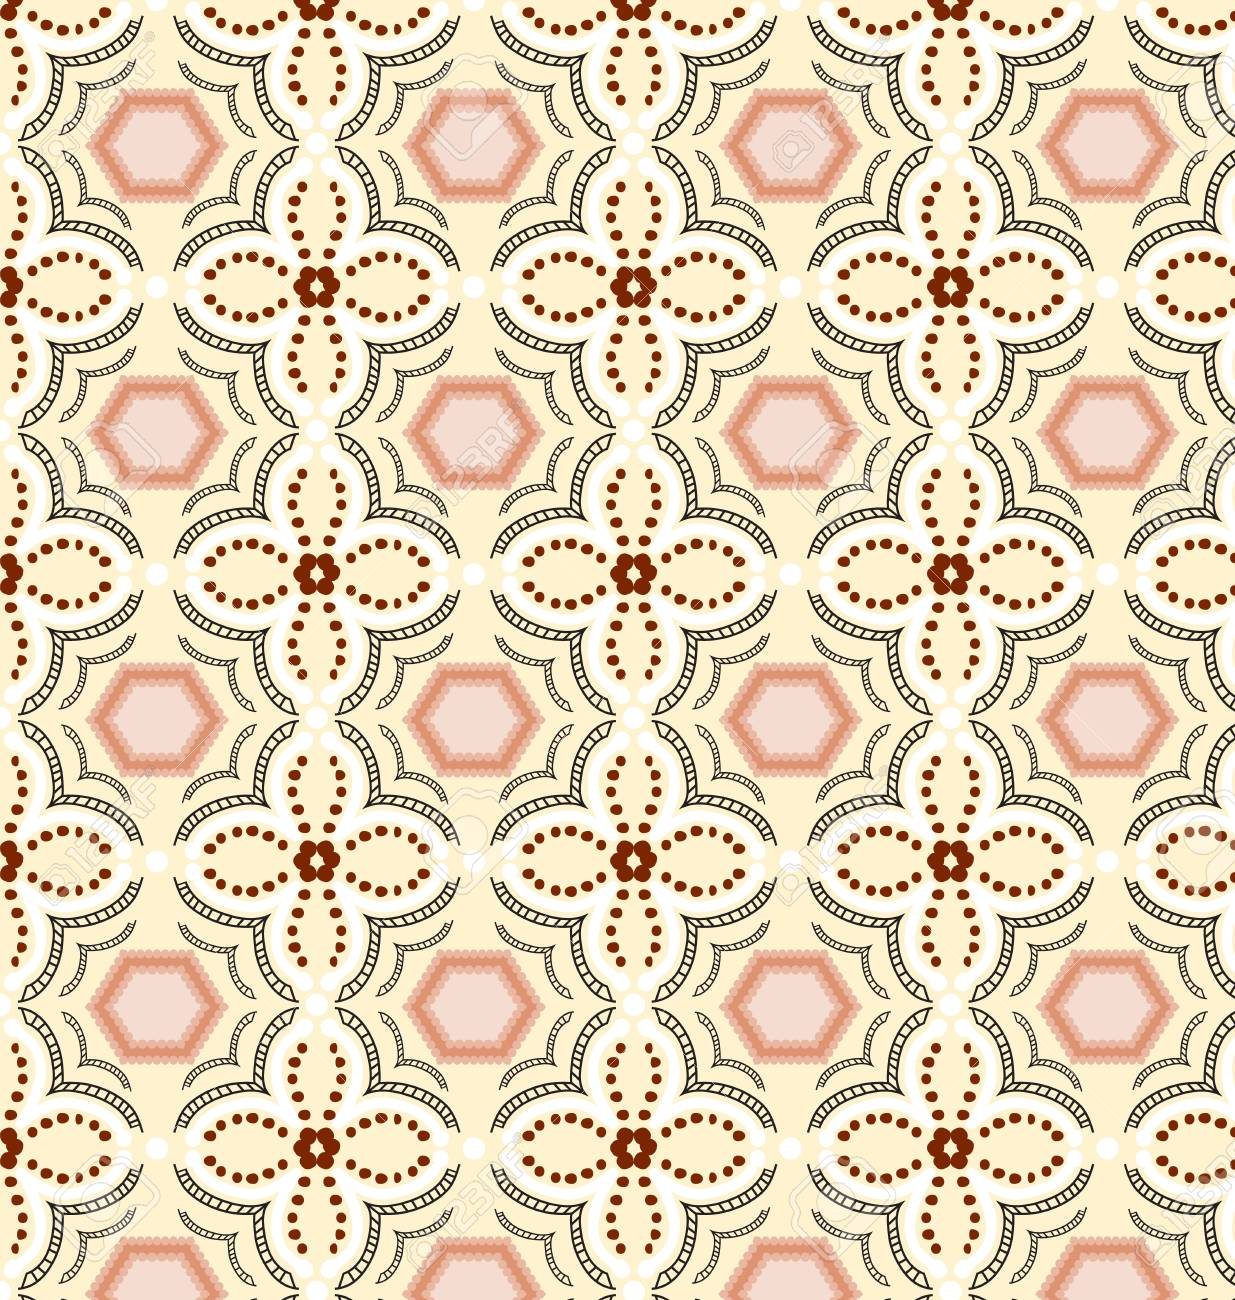 Portuguese Tile Patterns Background Flower Seamless Floral Pattern